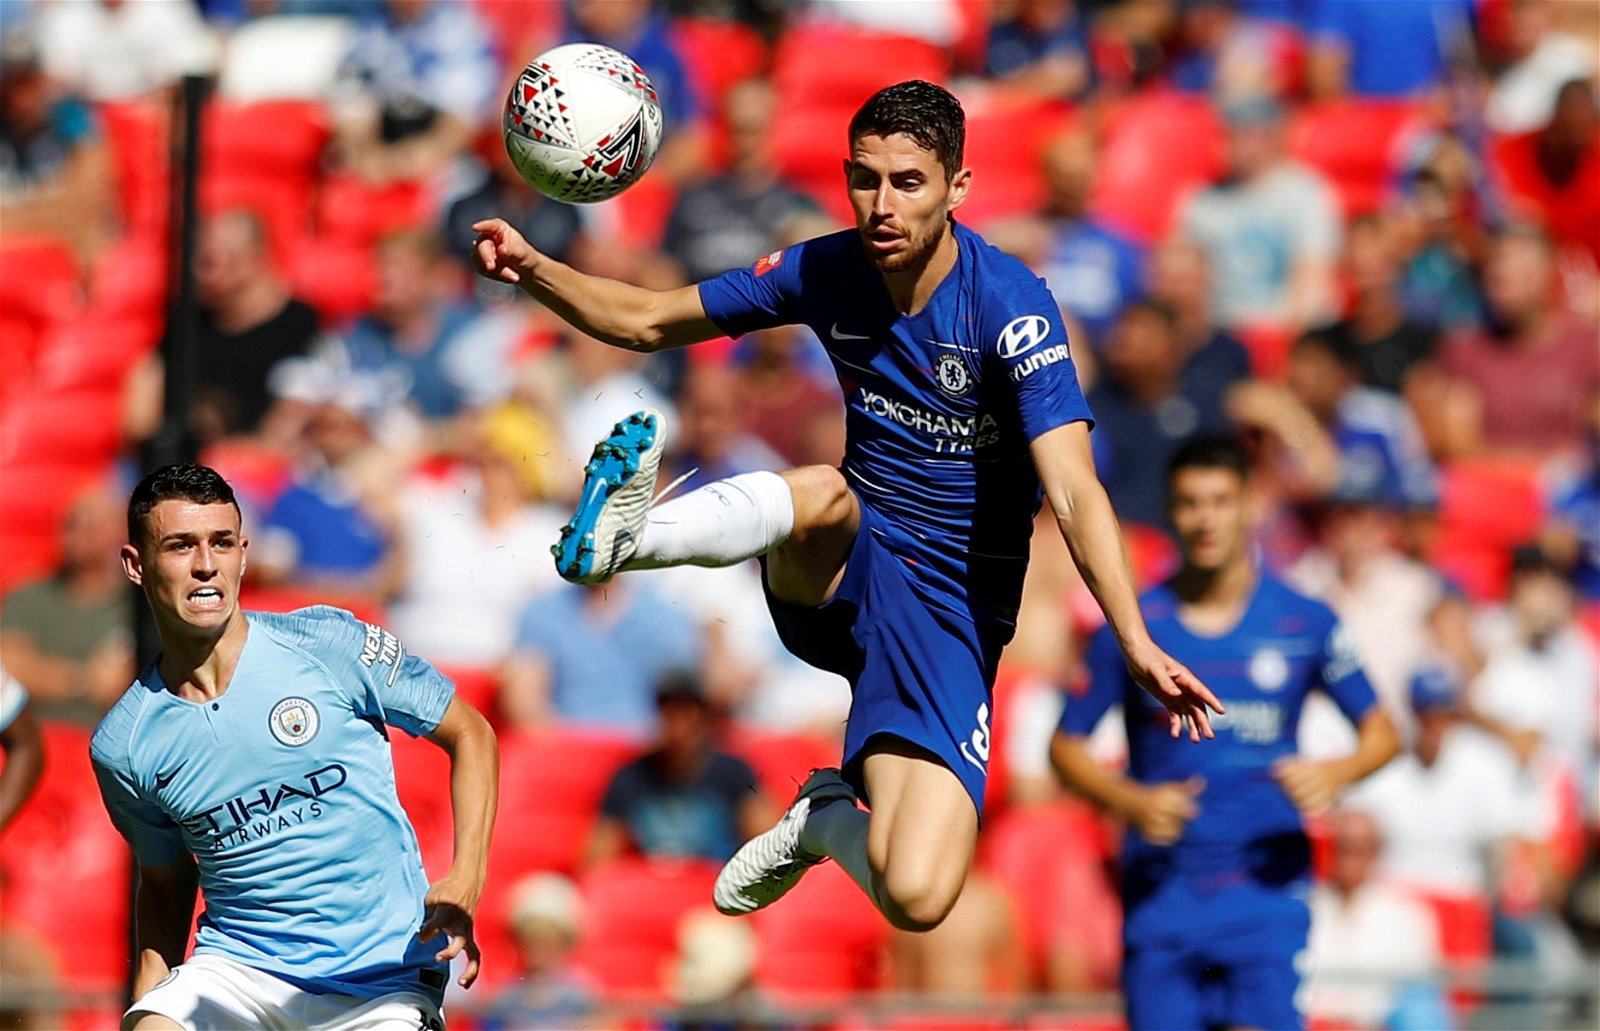 Chelsea's Jorginho challenges Man City's Phil Foden for the ball at the Community Shield